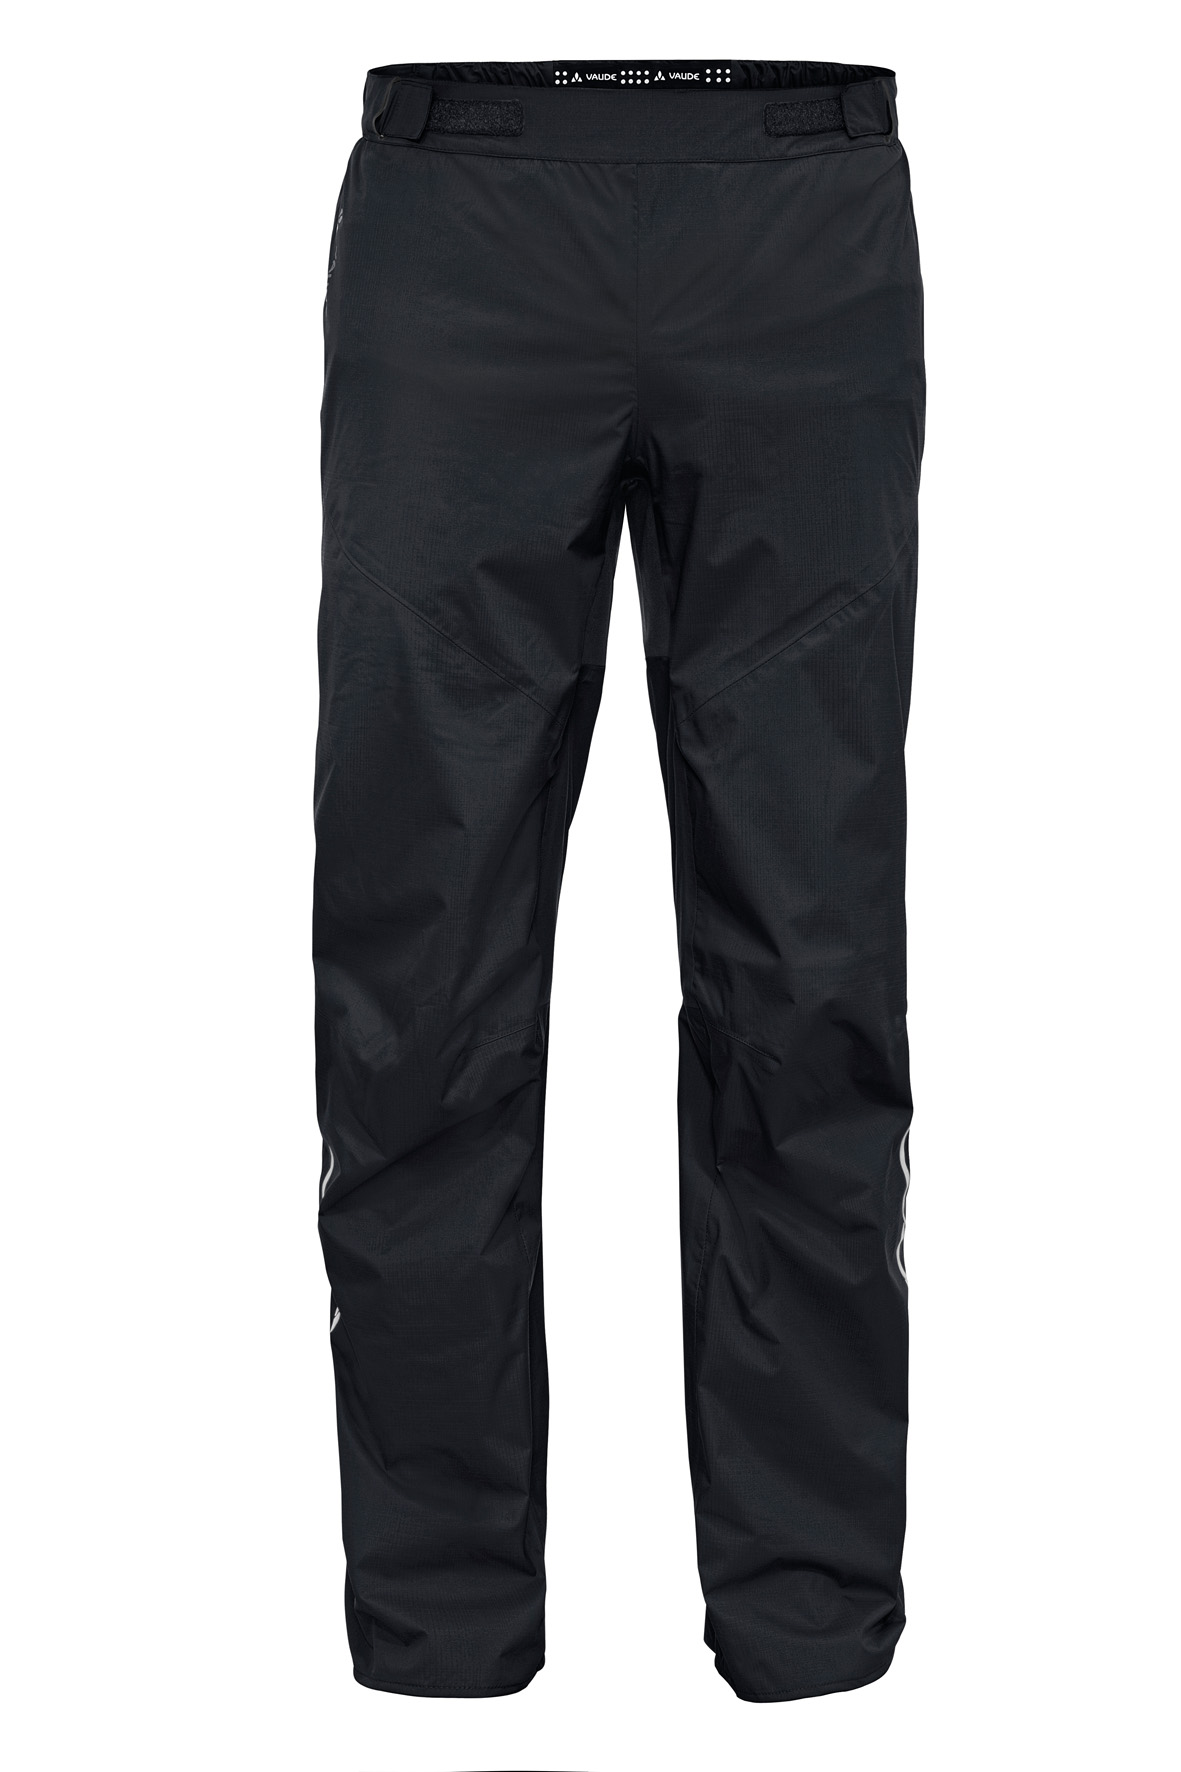 Men´s Tiak Pants black Größe S - schneider-sports